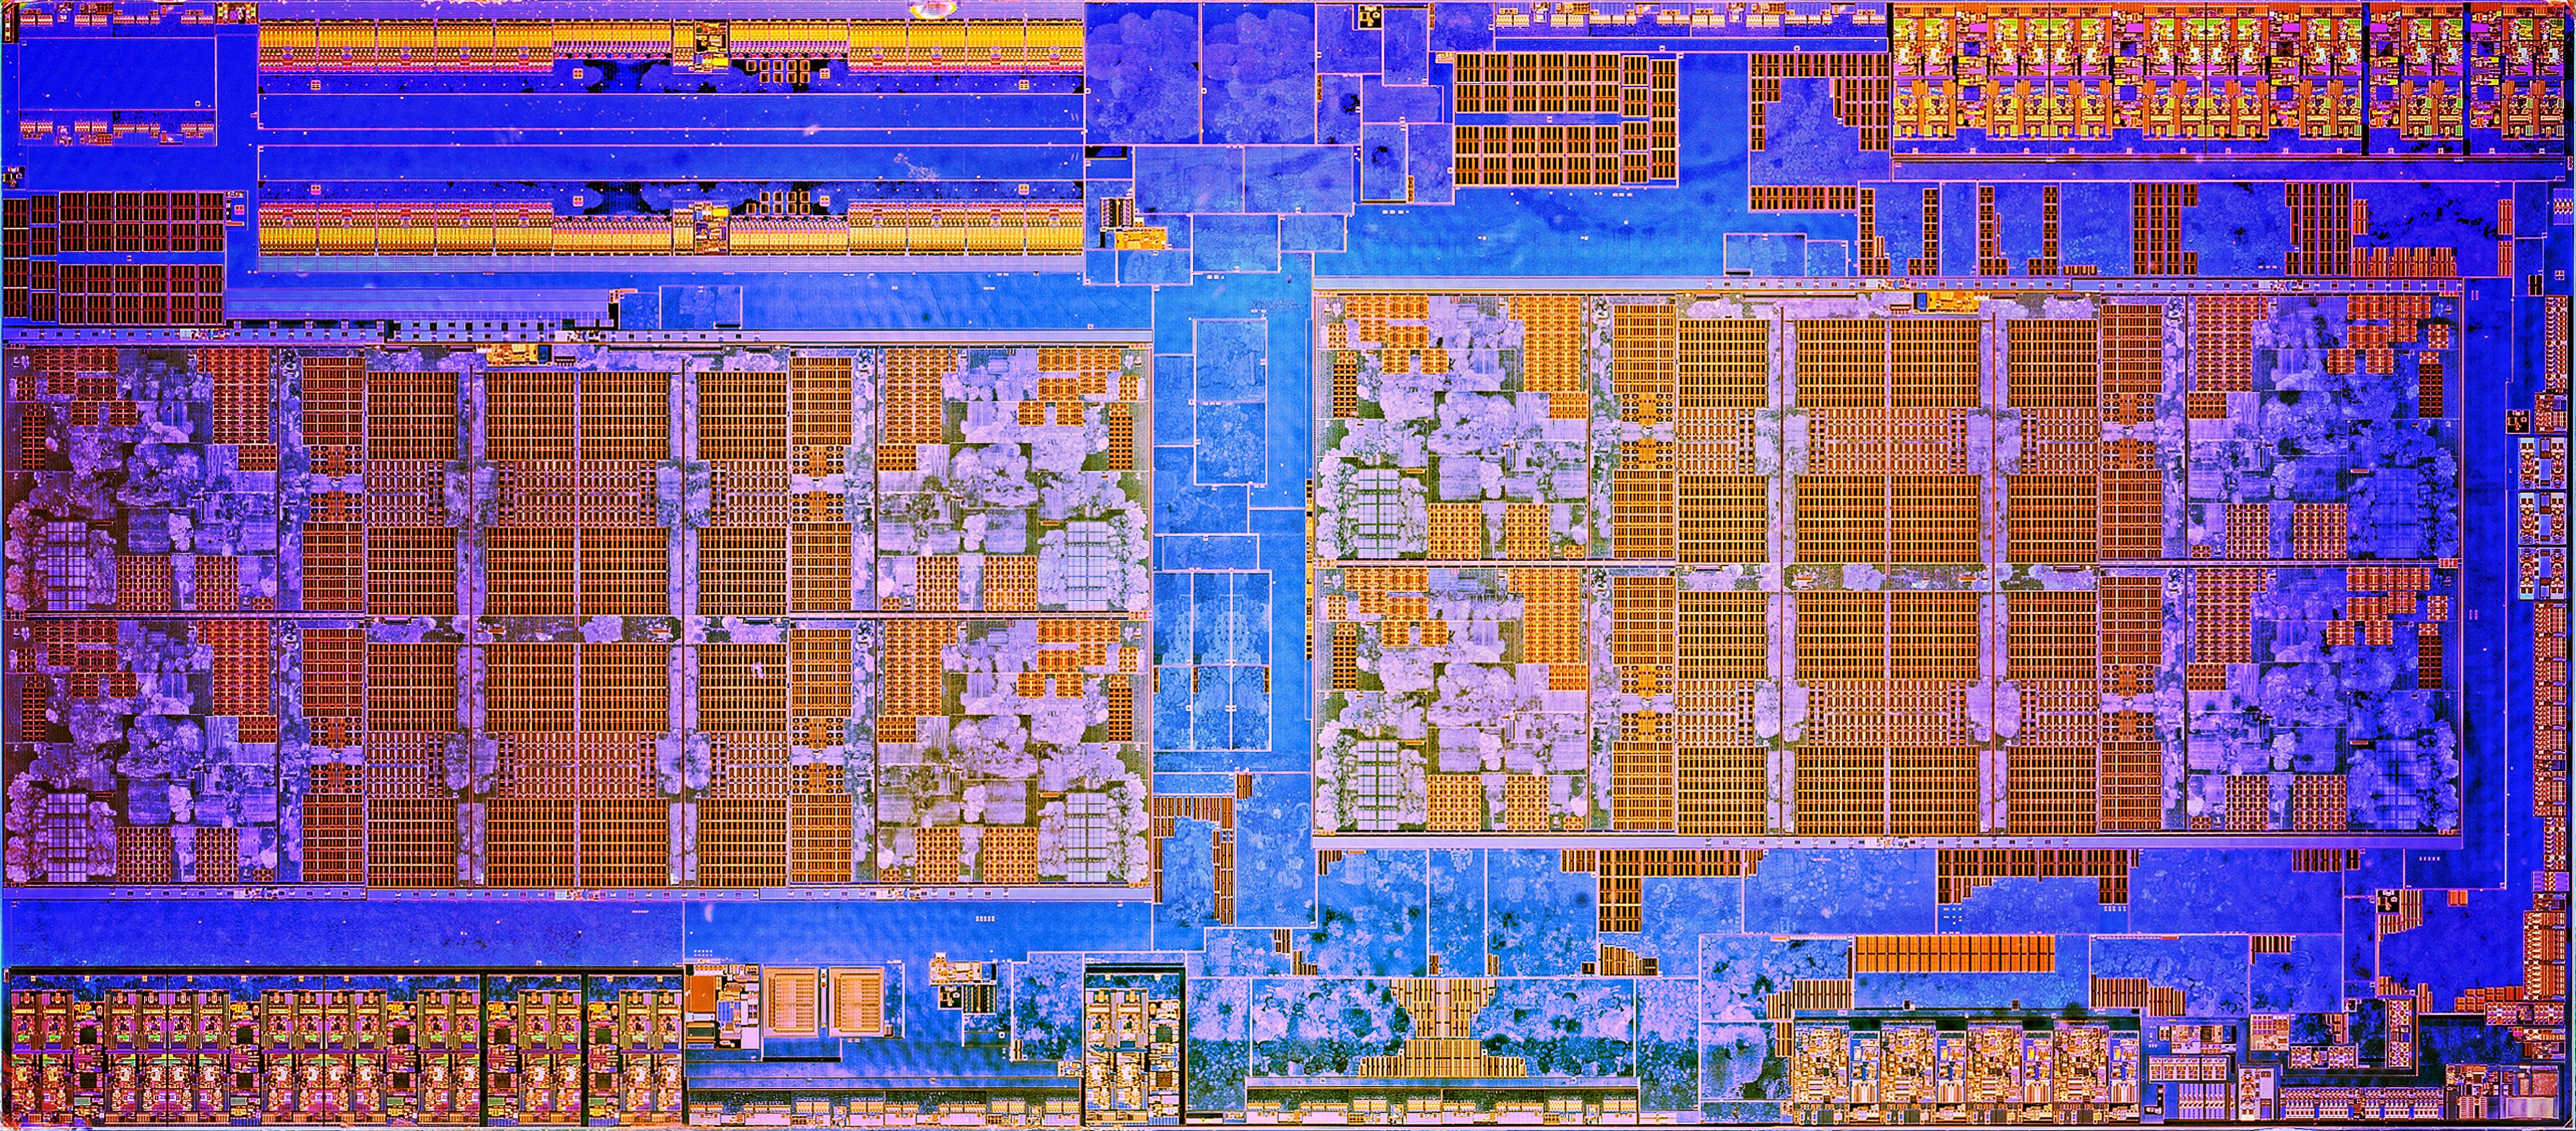 Theories on why the SMT hurts the performance of gaming in Ryzen and